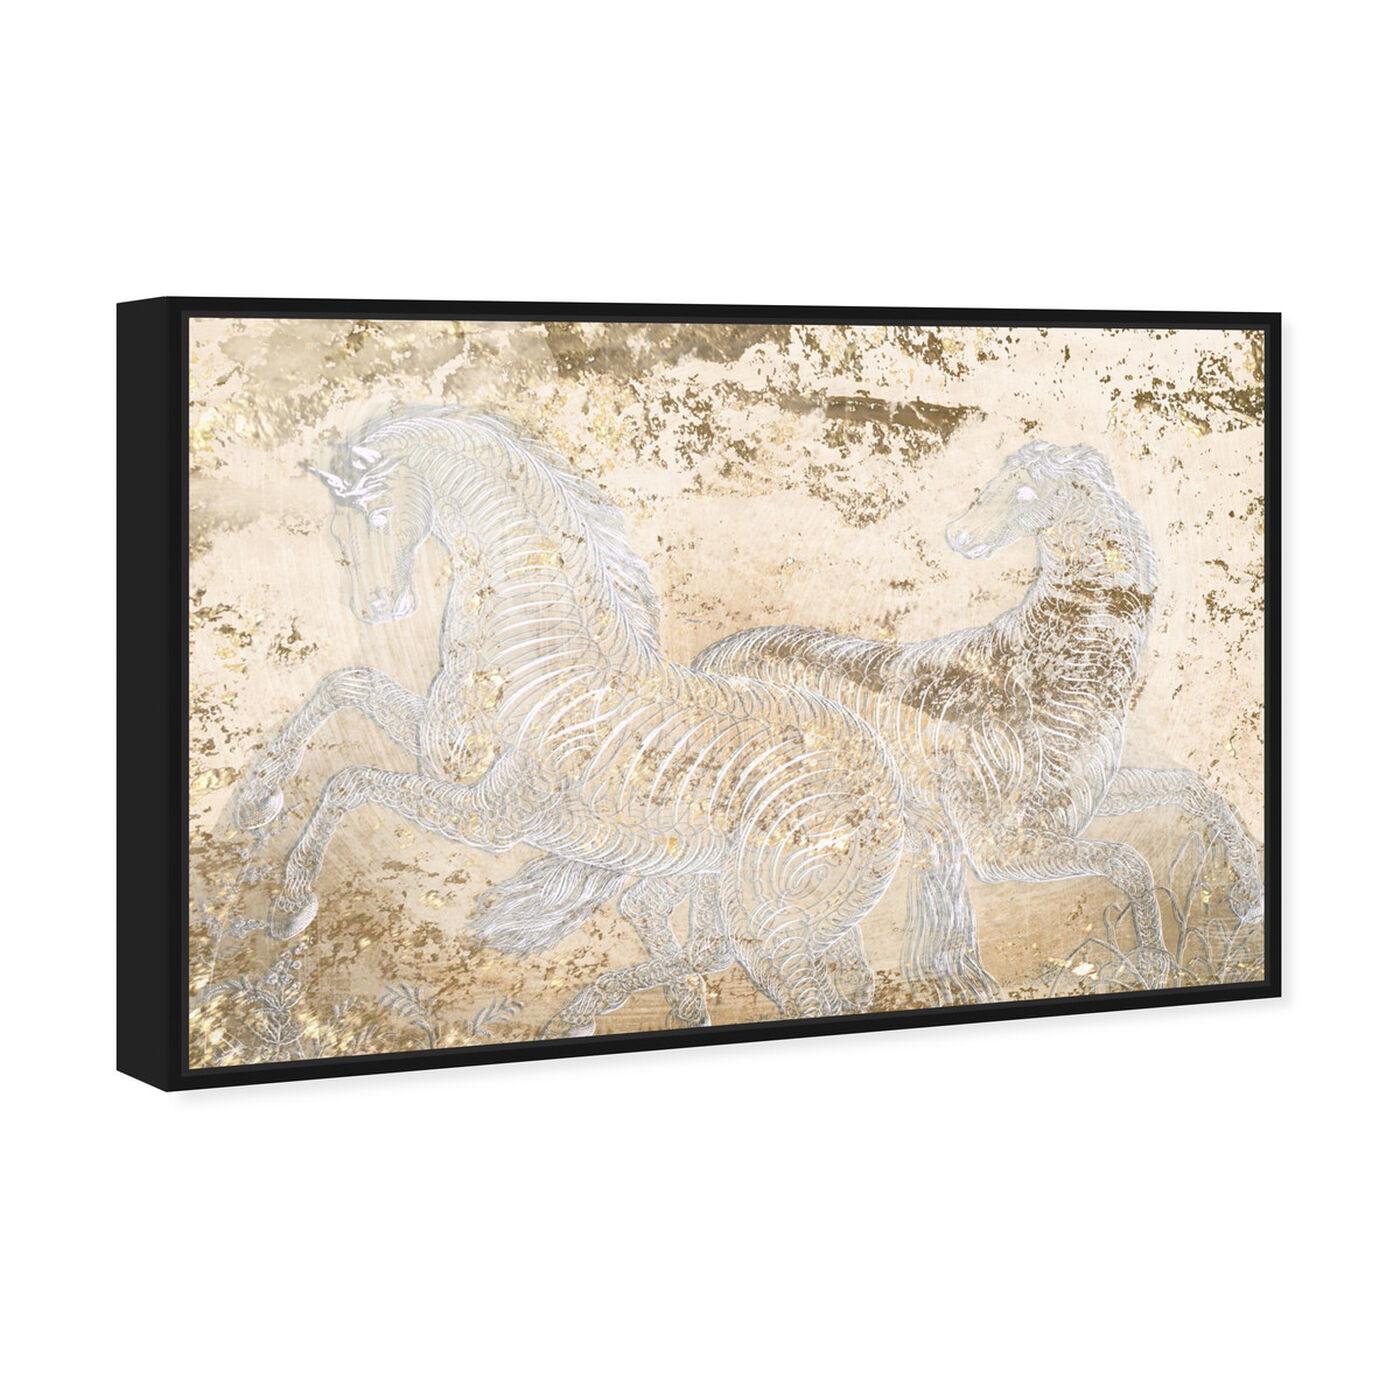 Angled view of Gold Equestrian featuring animals and farm animals art.